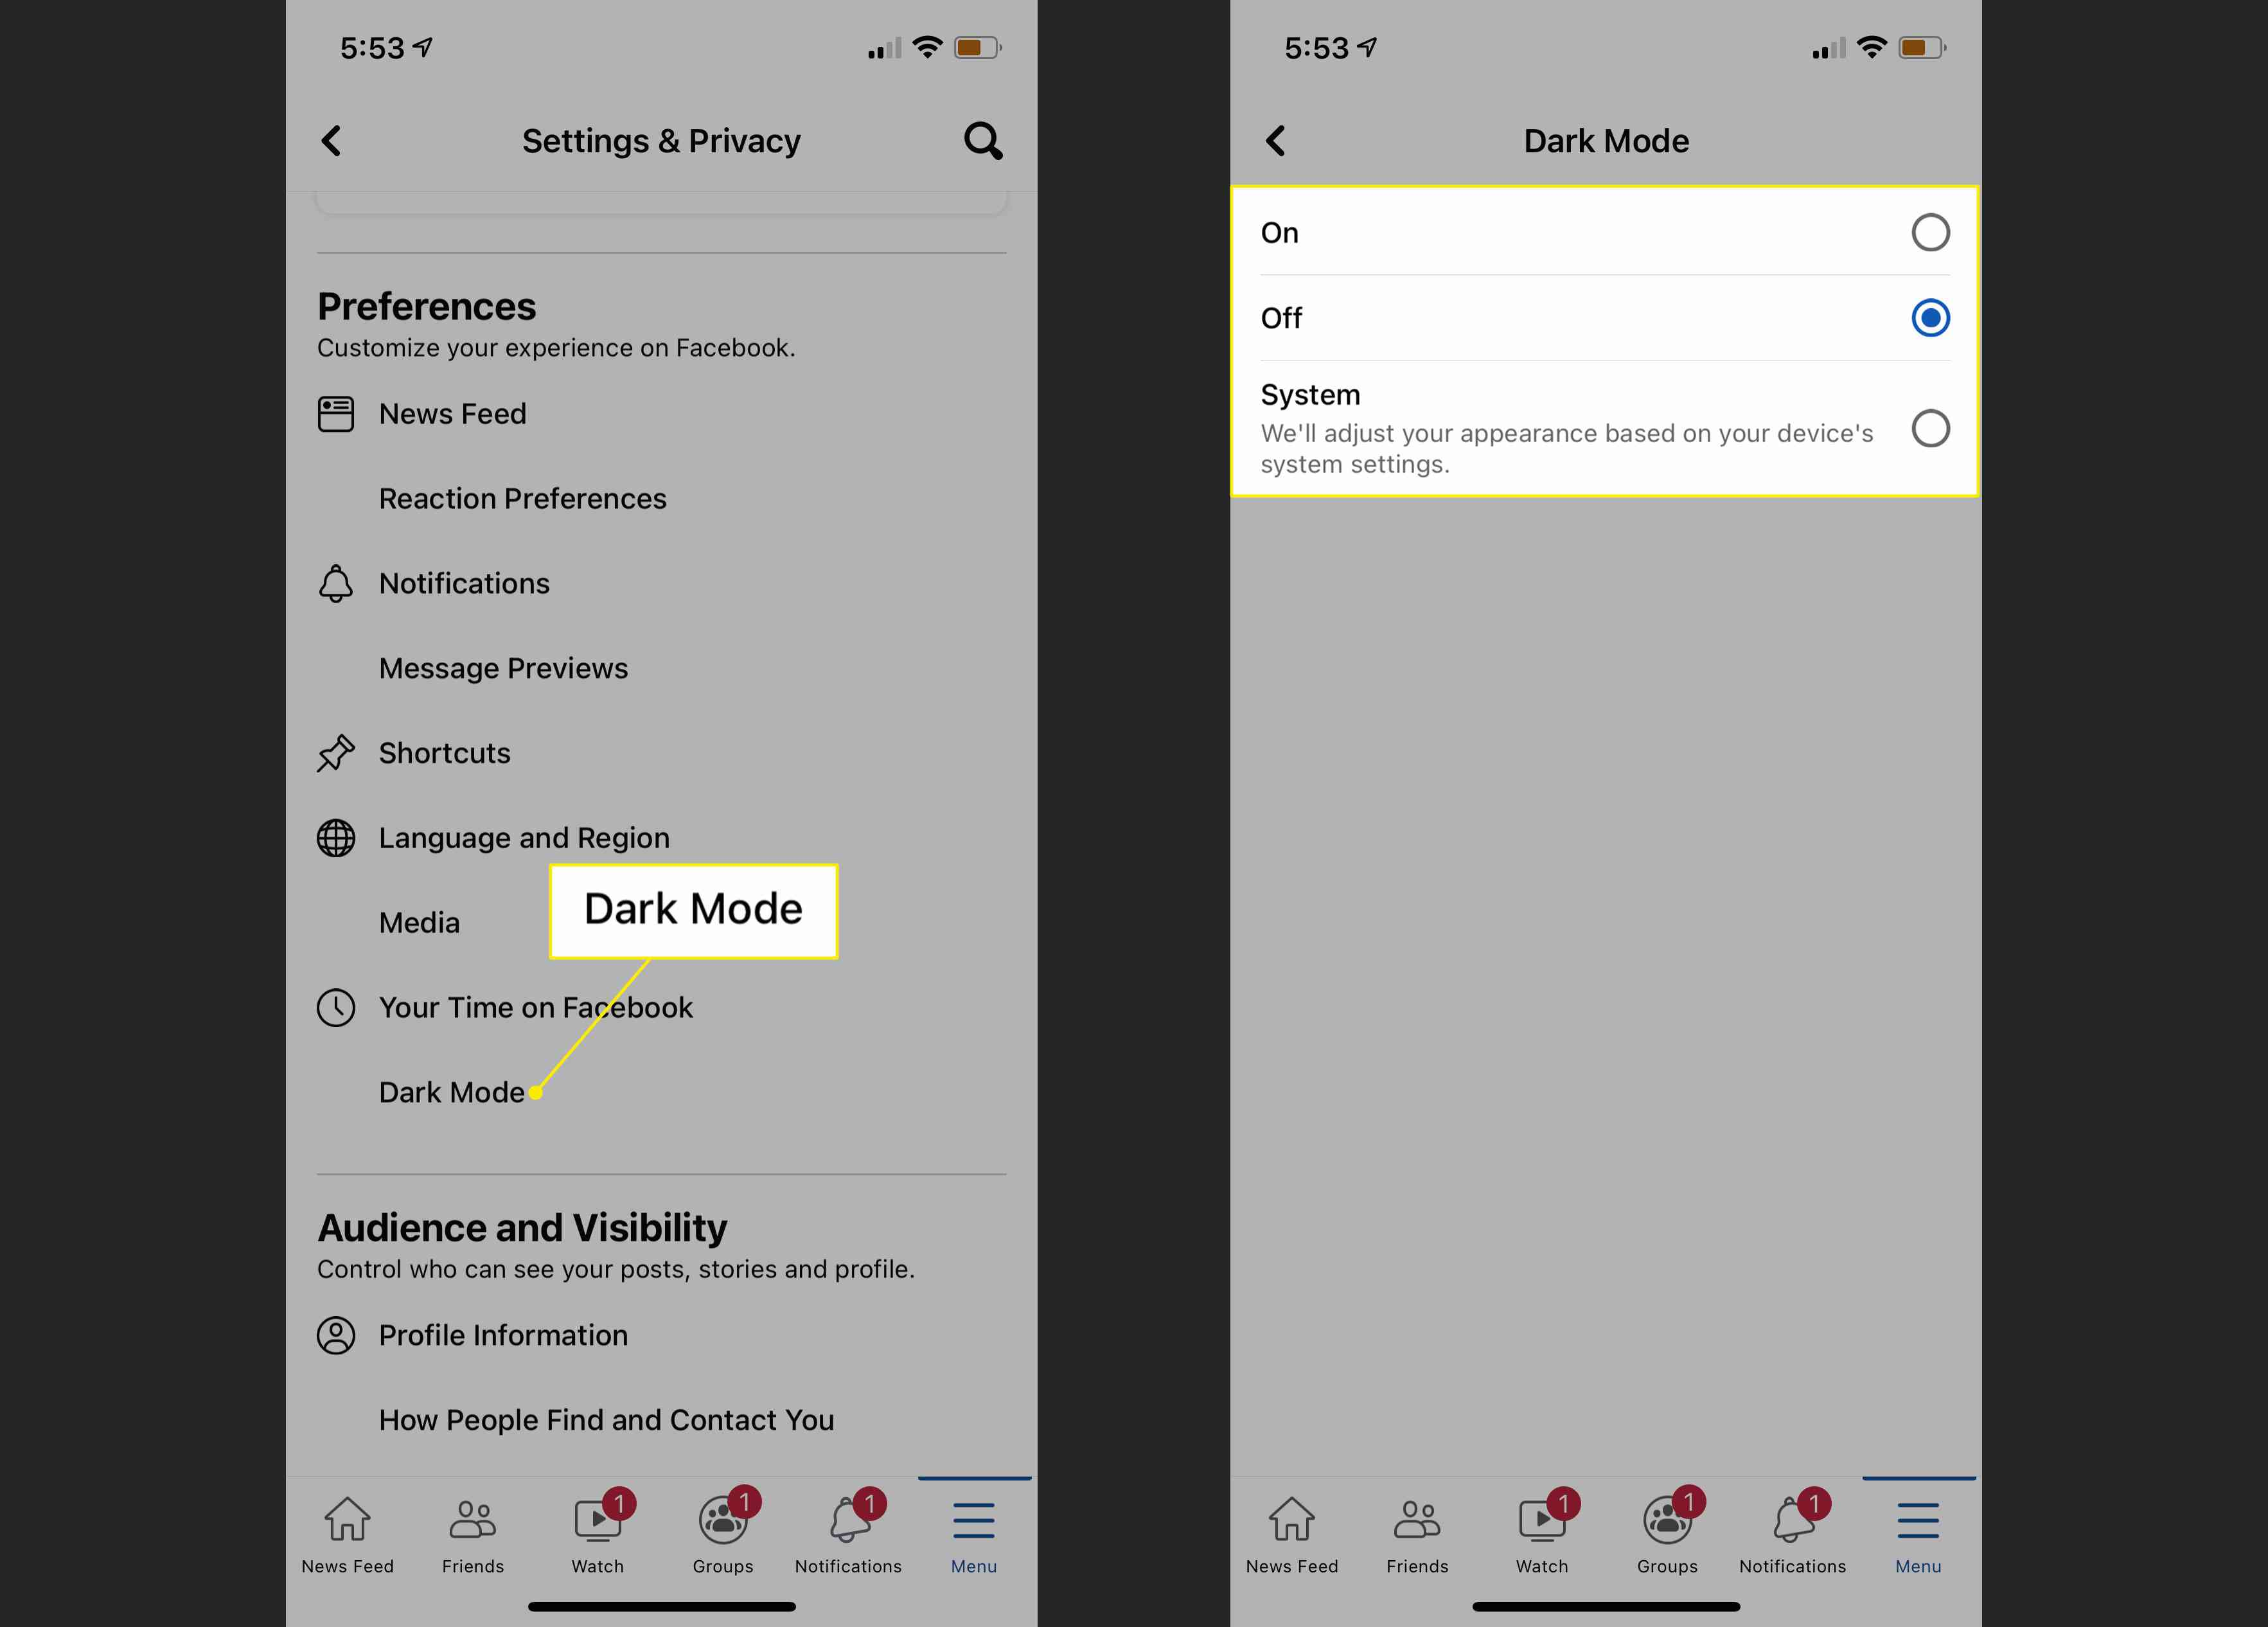 The Dark Mode heading and options in Facebook settings